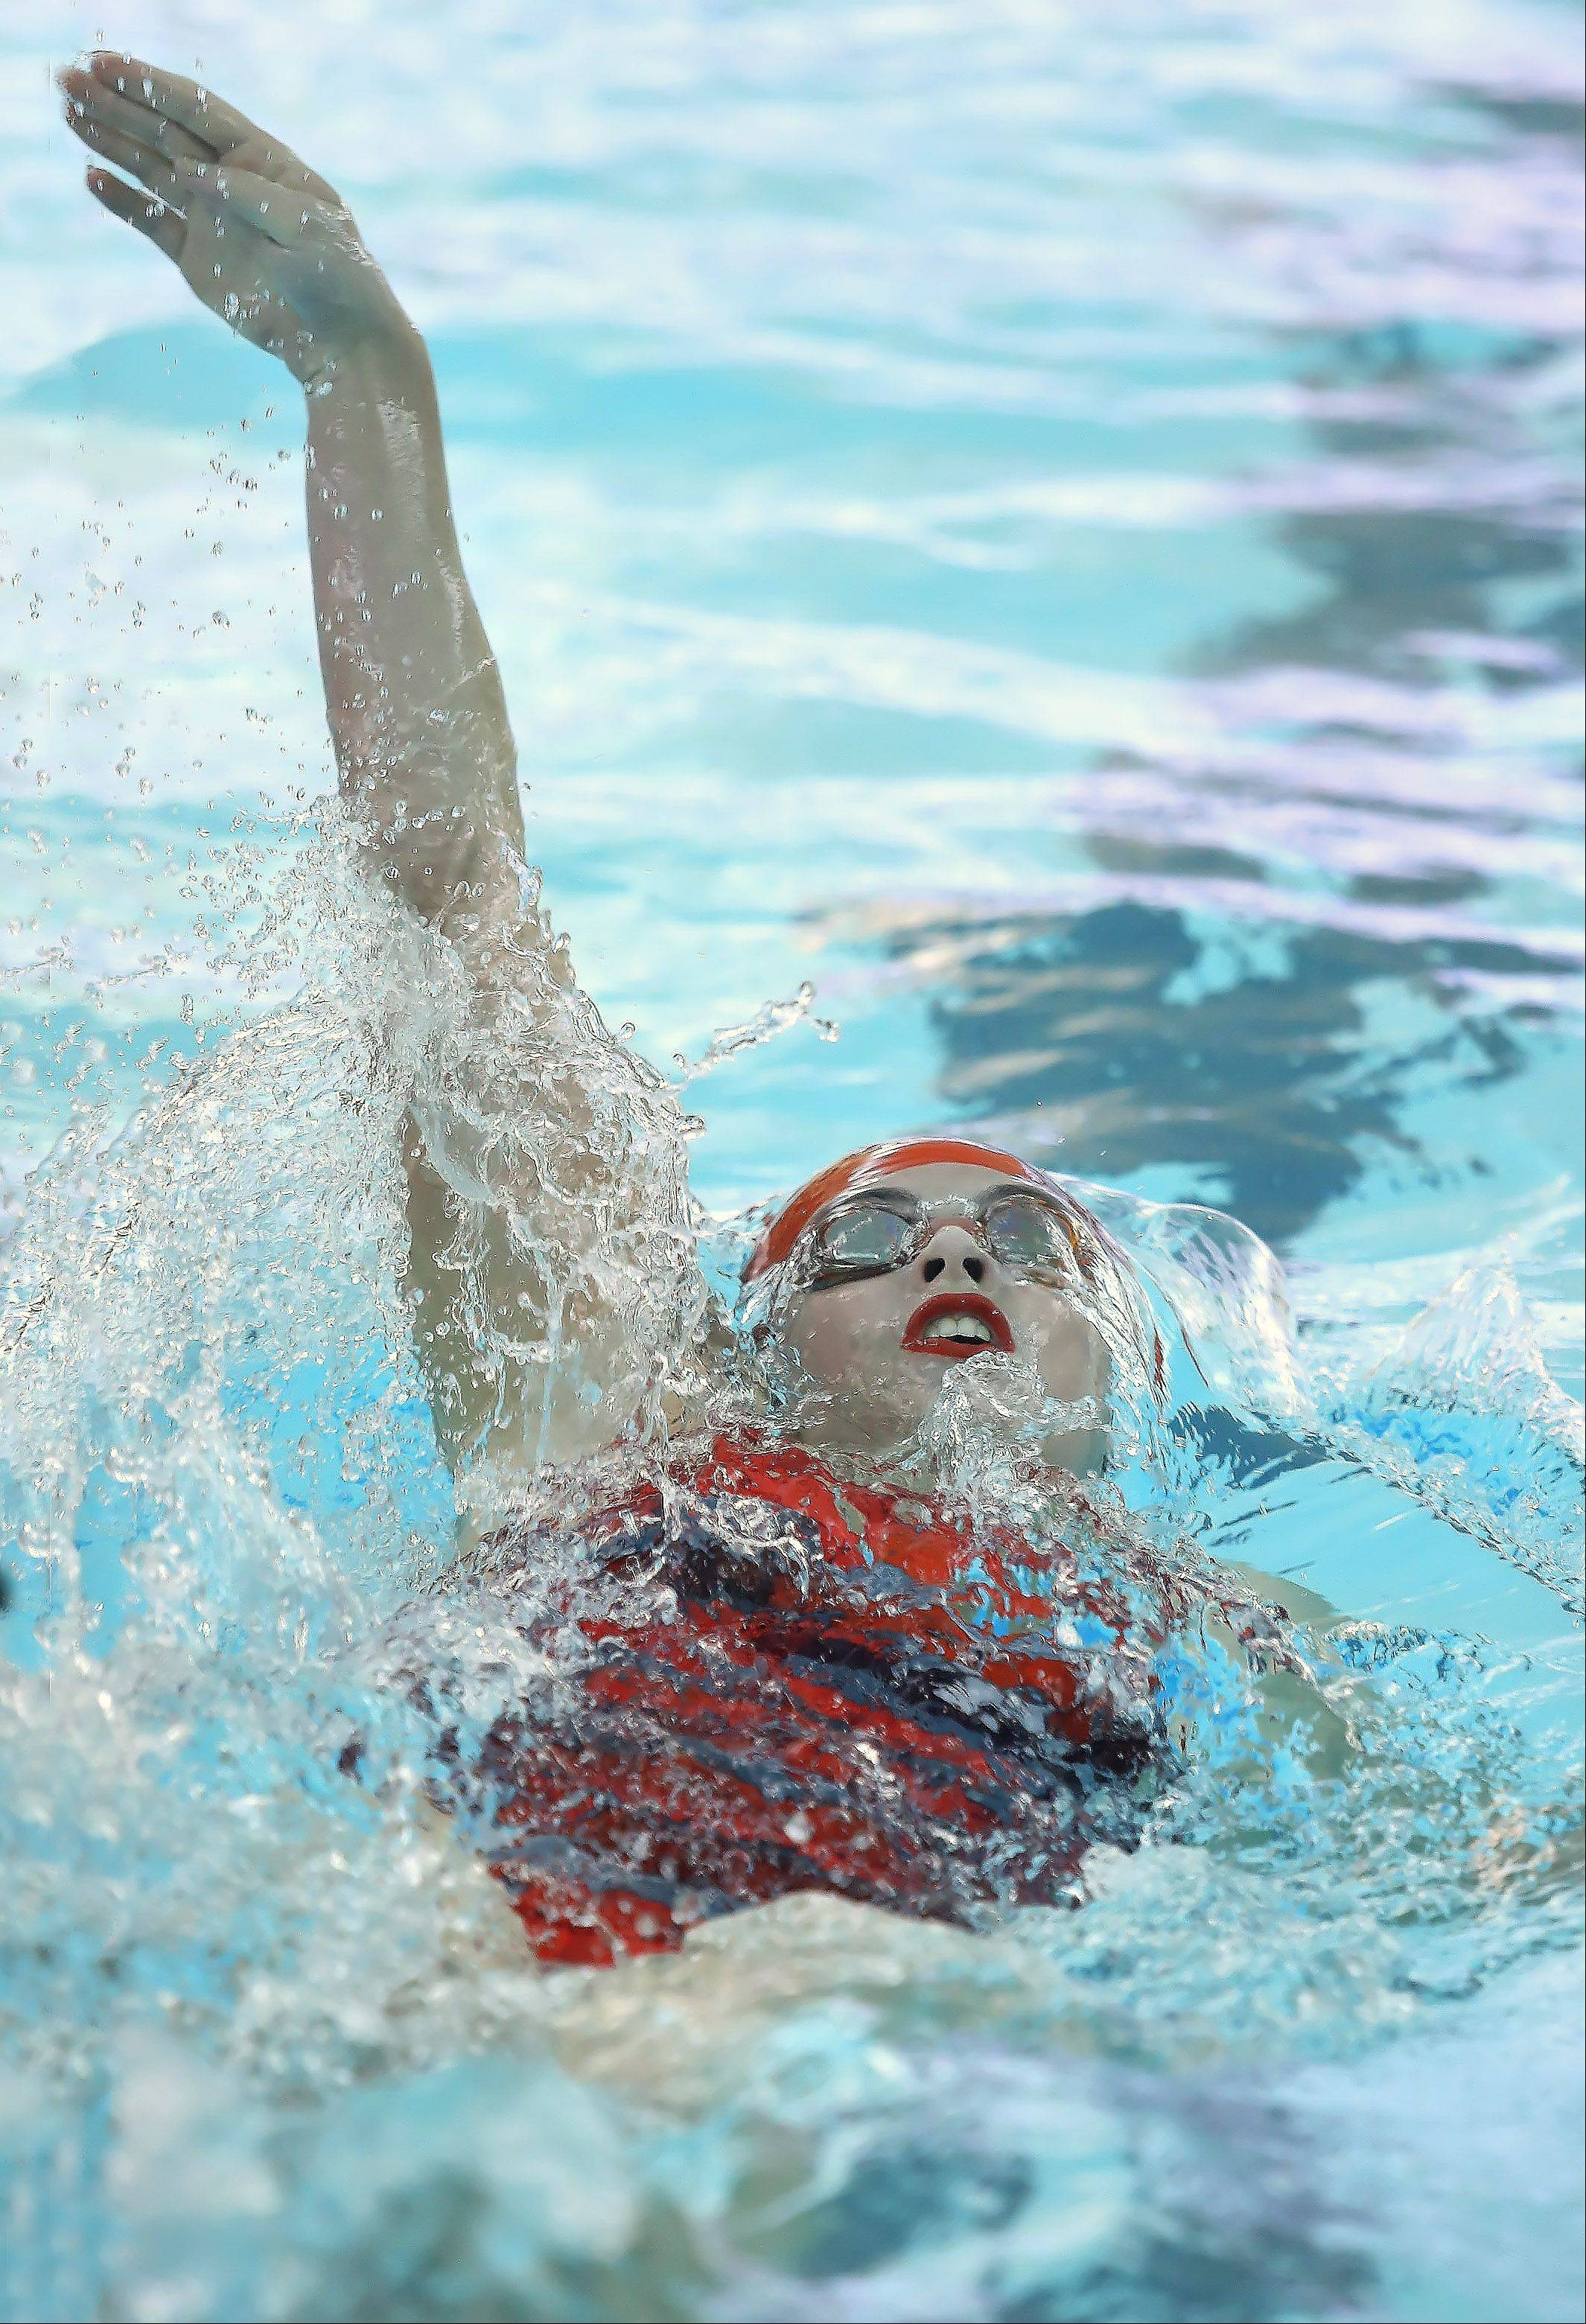 Mundelein's Jenn Kordik wins the 200-yard individual medley during Thursday's swimming meet in Libertyville.